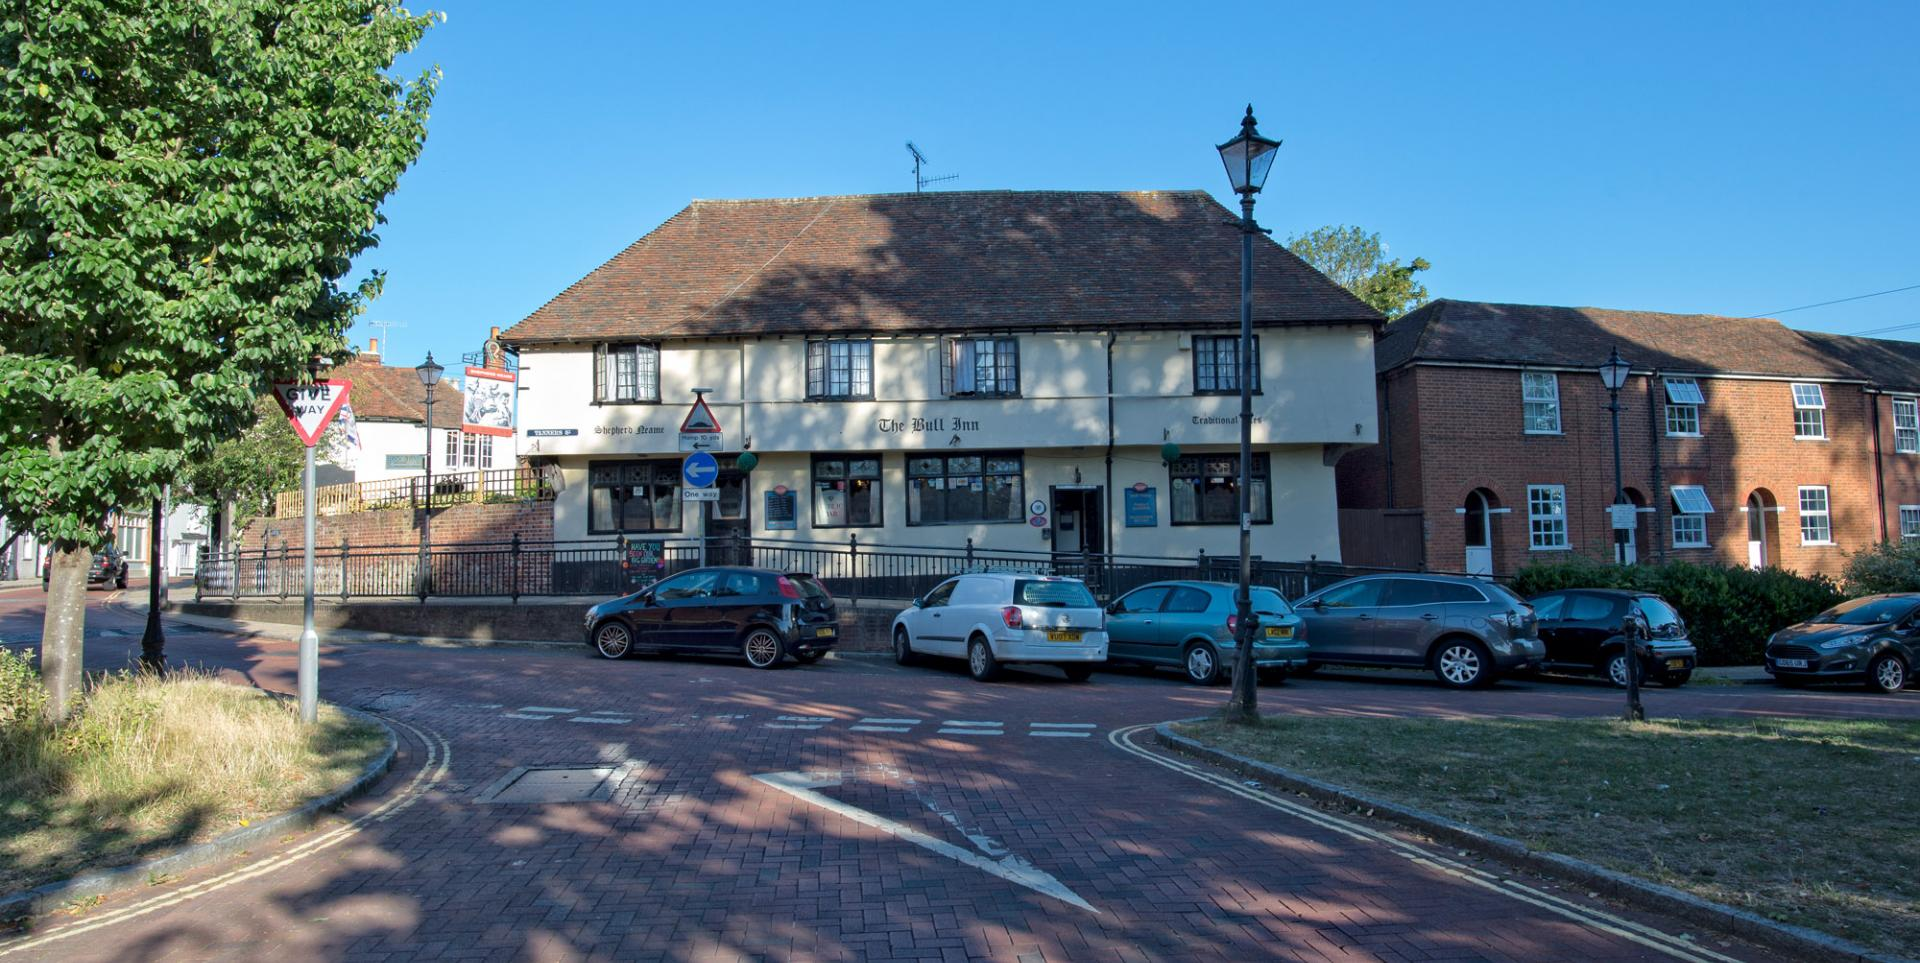 Bull Inn, Faversham